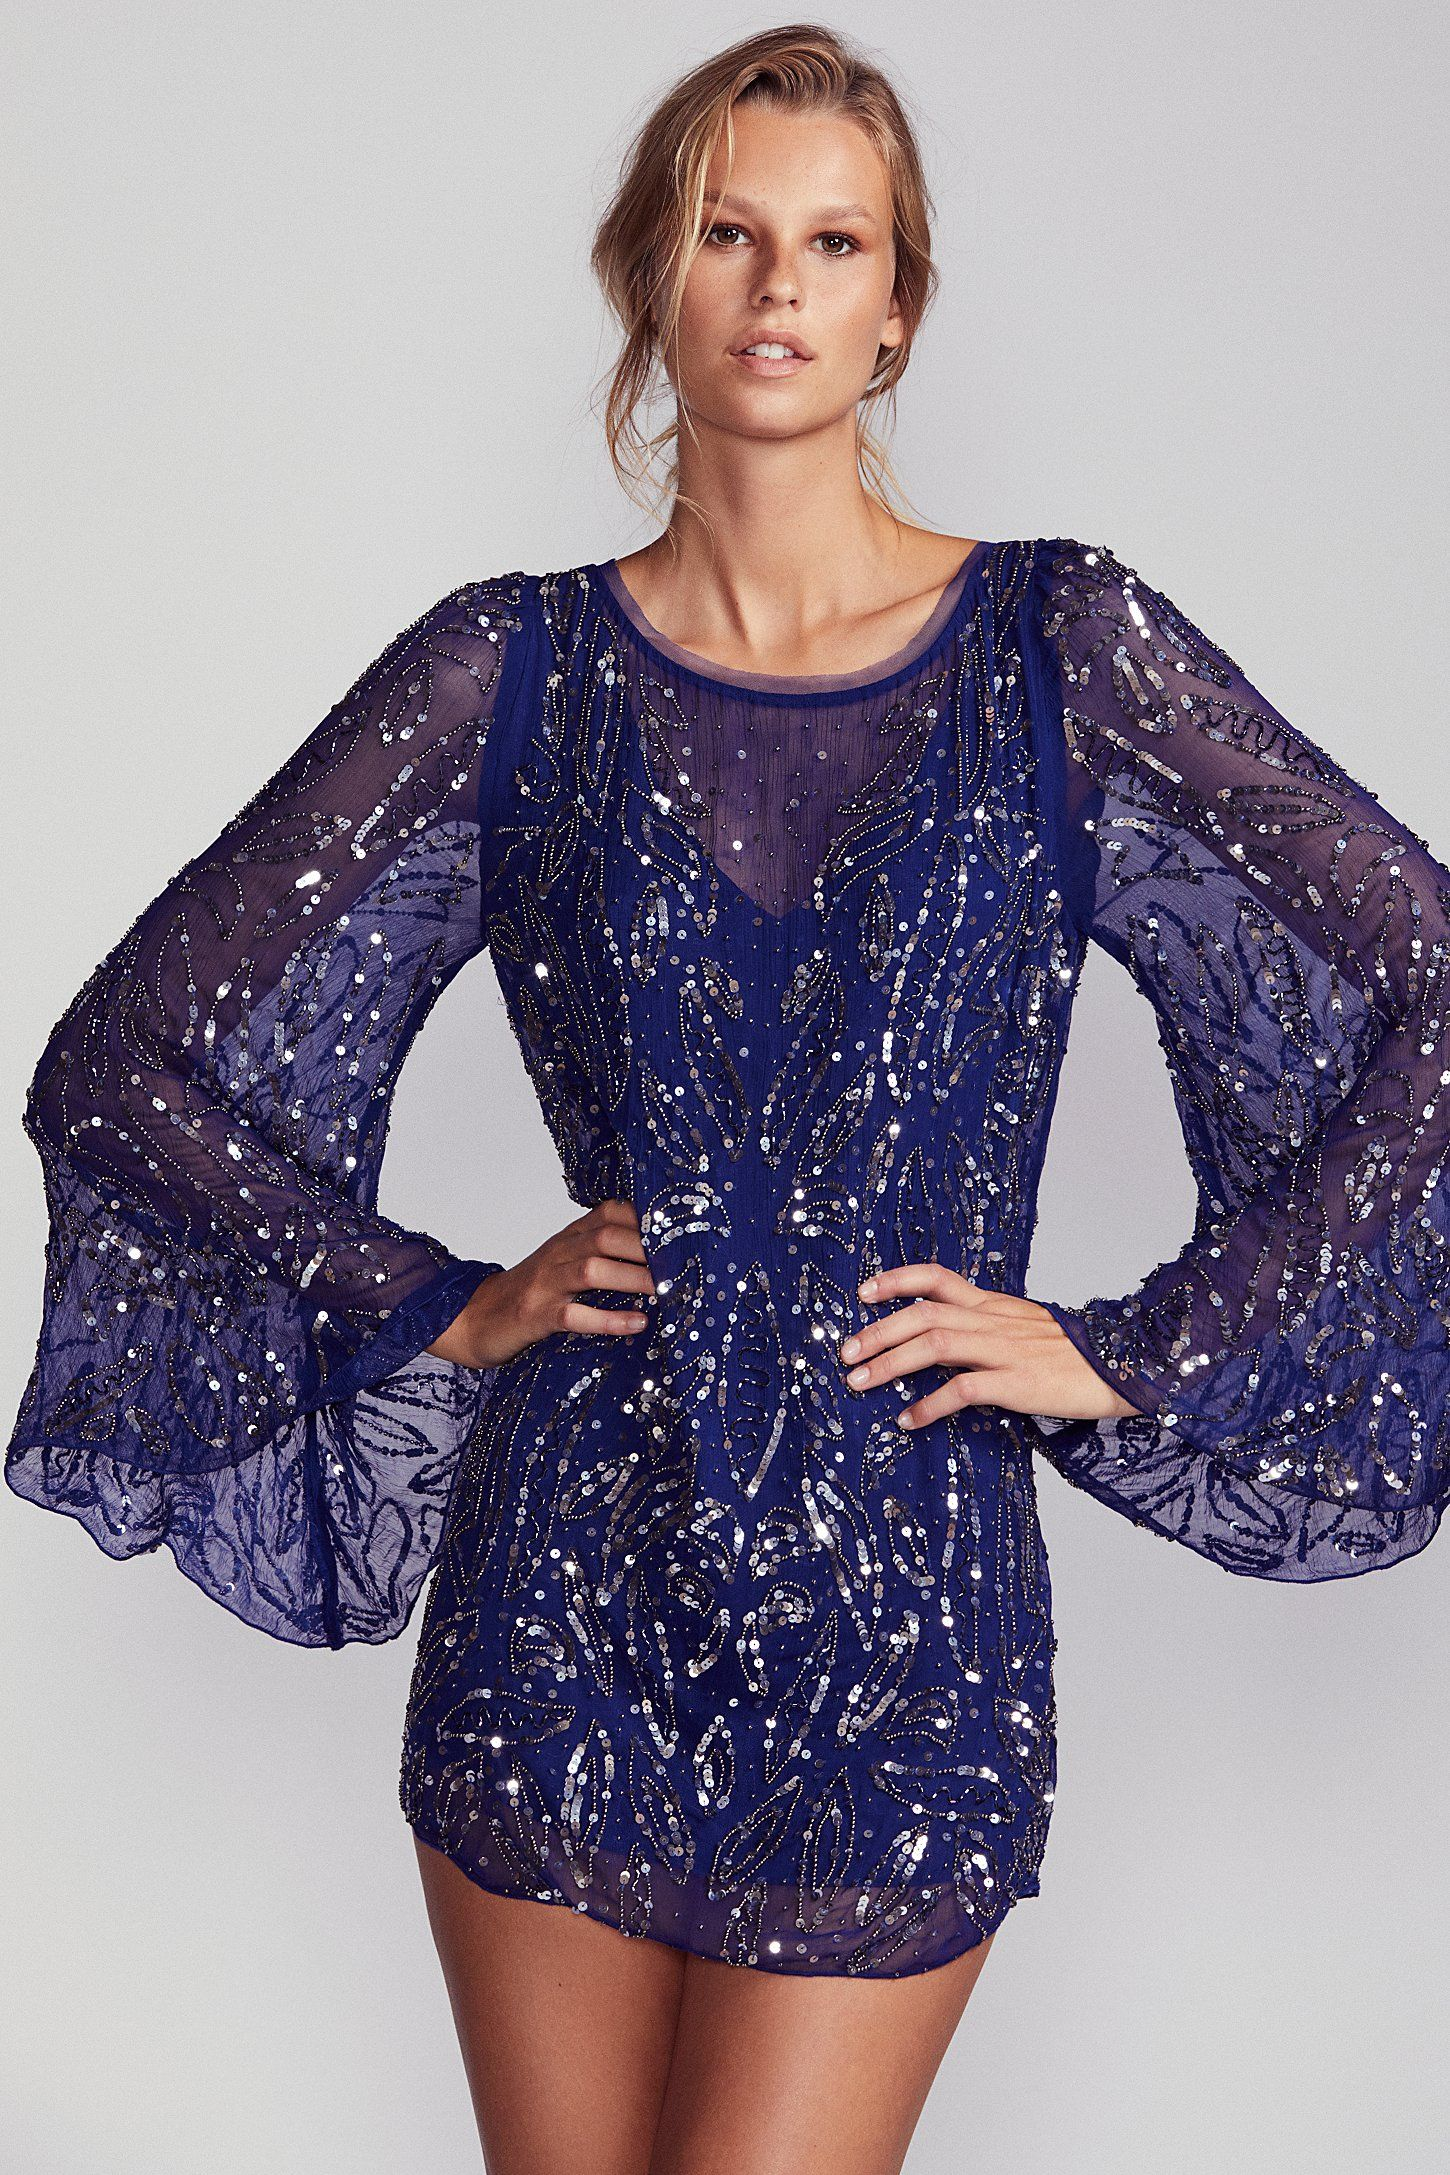 76ee4f2f Shop our Sequin Sparkle Bow Mini Dress at Free People.com. Share style pics  with FP Me, and read & post reviews. Free shipping worldwide - see site for  ...